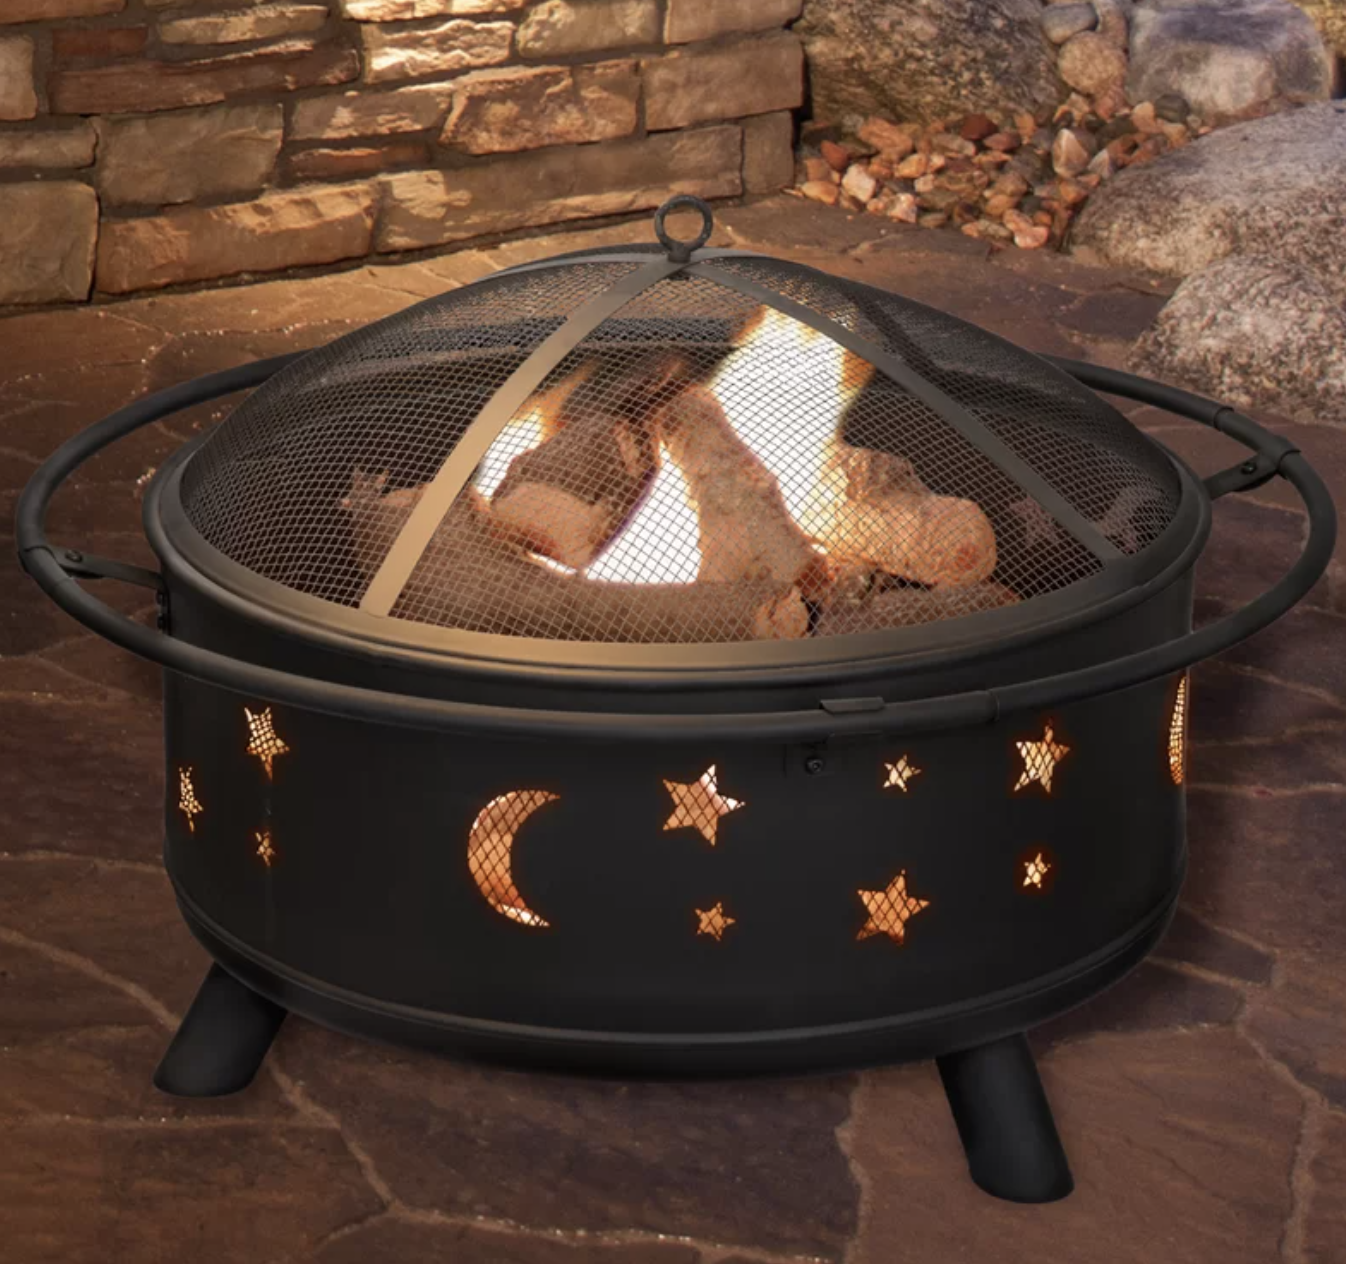 A moon and star detailed fire pit glowing at night